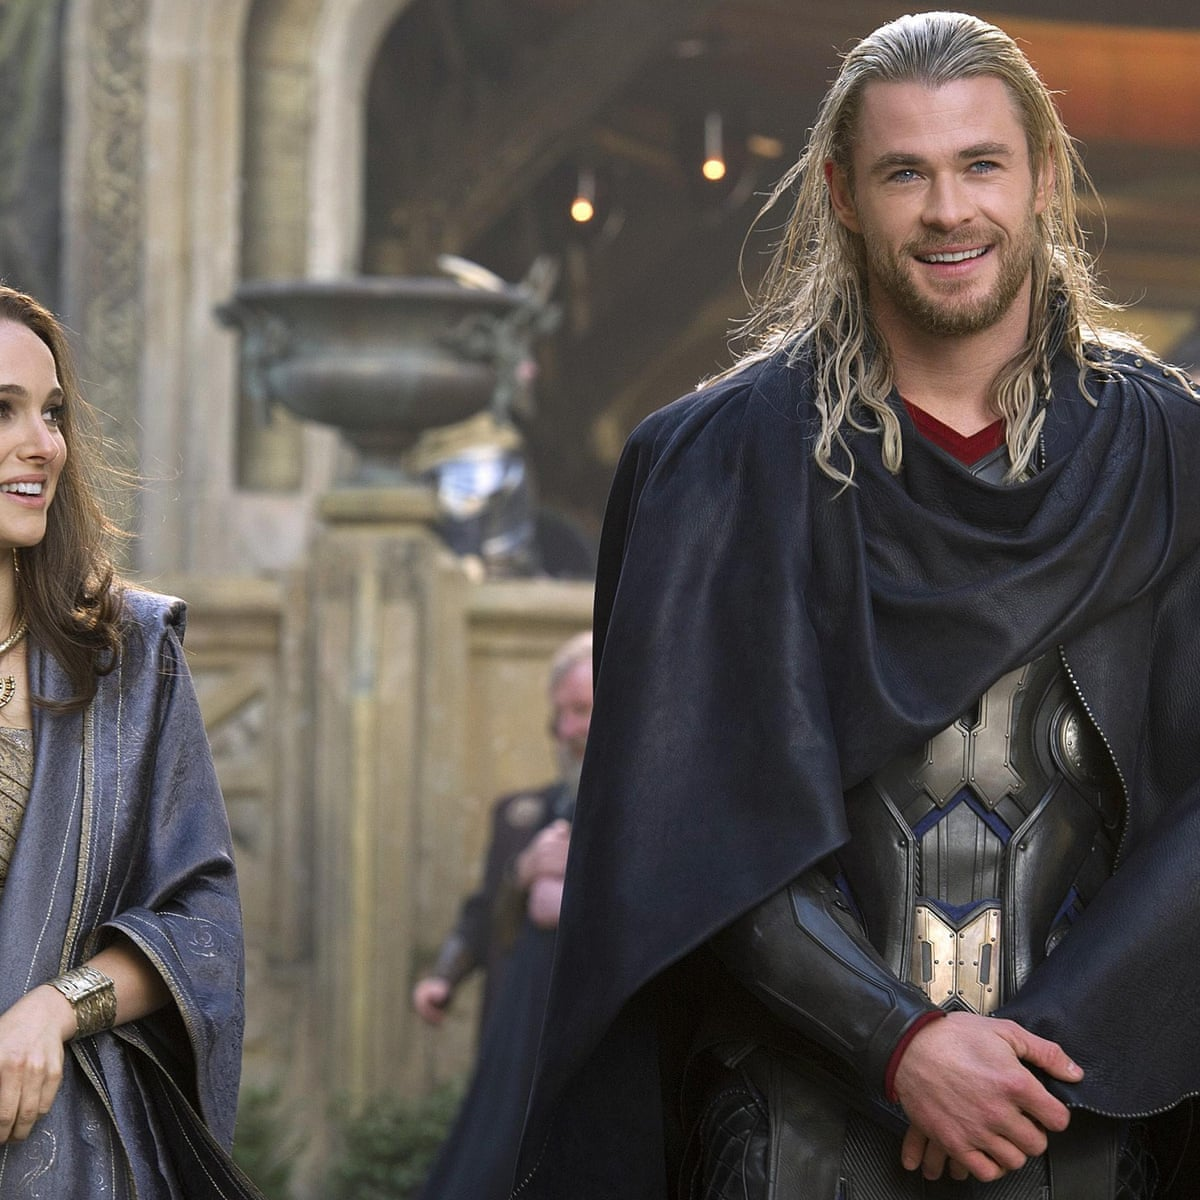 Natalie Portman Confirmed As Mighty Thor In Marvel Sequel Thor The Guardian It features one of thor's most memorable moments. mighty thor in marvel sequel